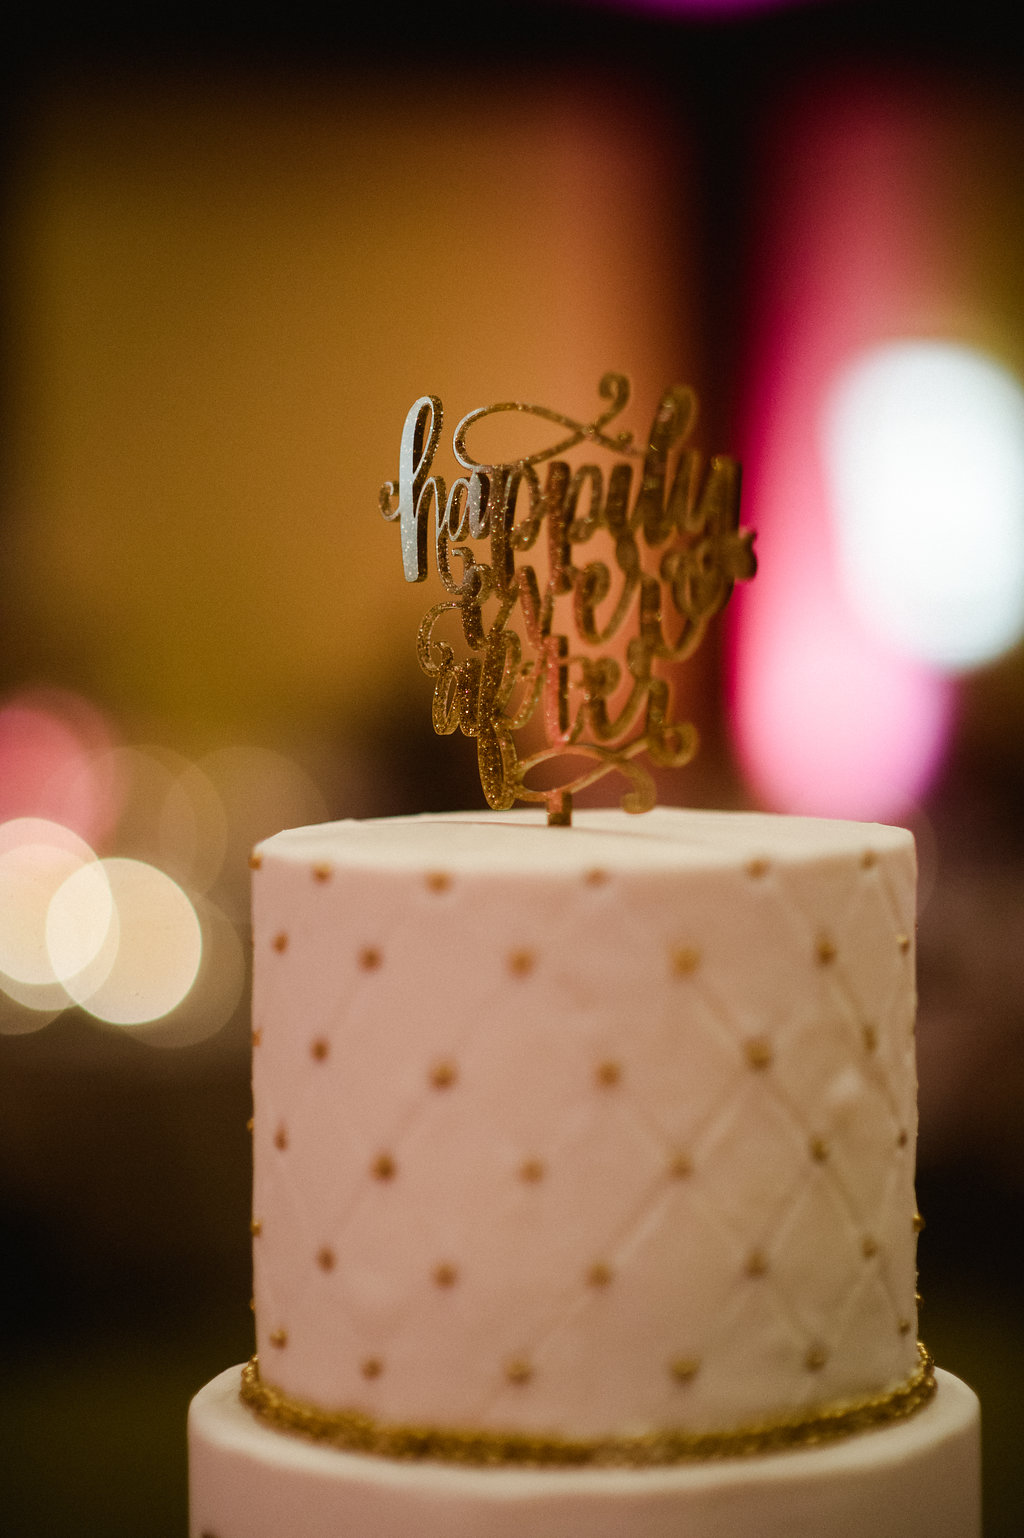 Detail shot of wedding cake created by Bar Cocoa featuring a tufted pattern on the top tier